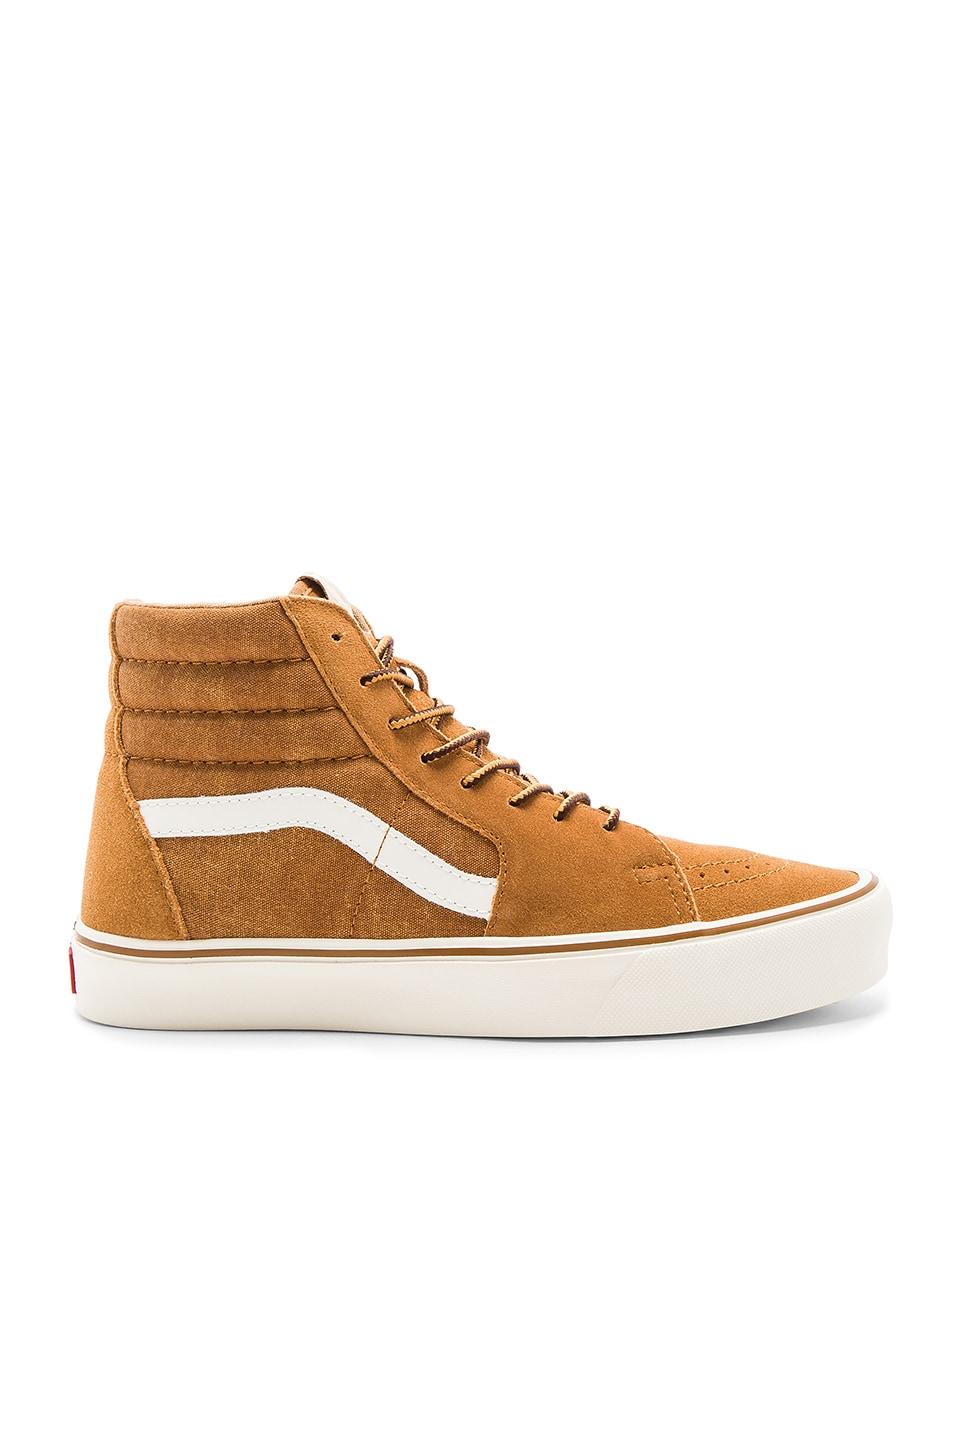 Vans SK8 Hi Lite in Cathay Spice & Classic White